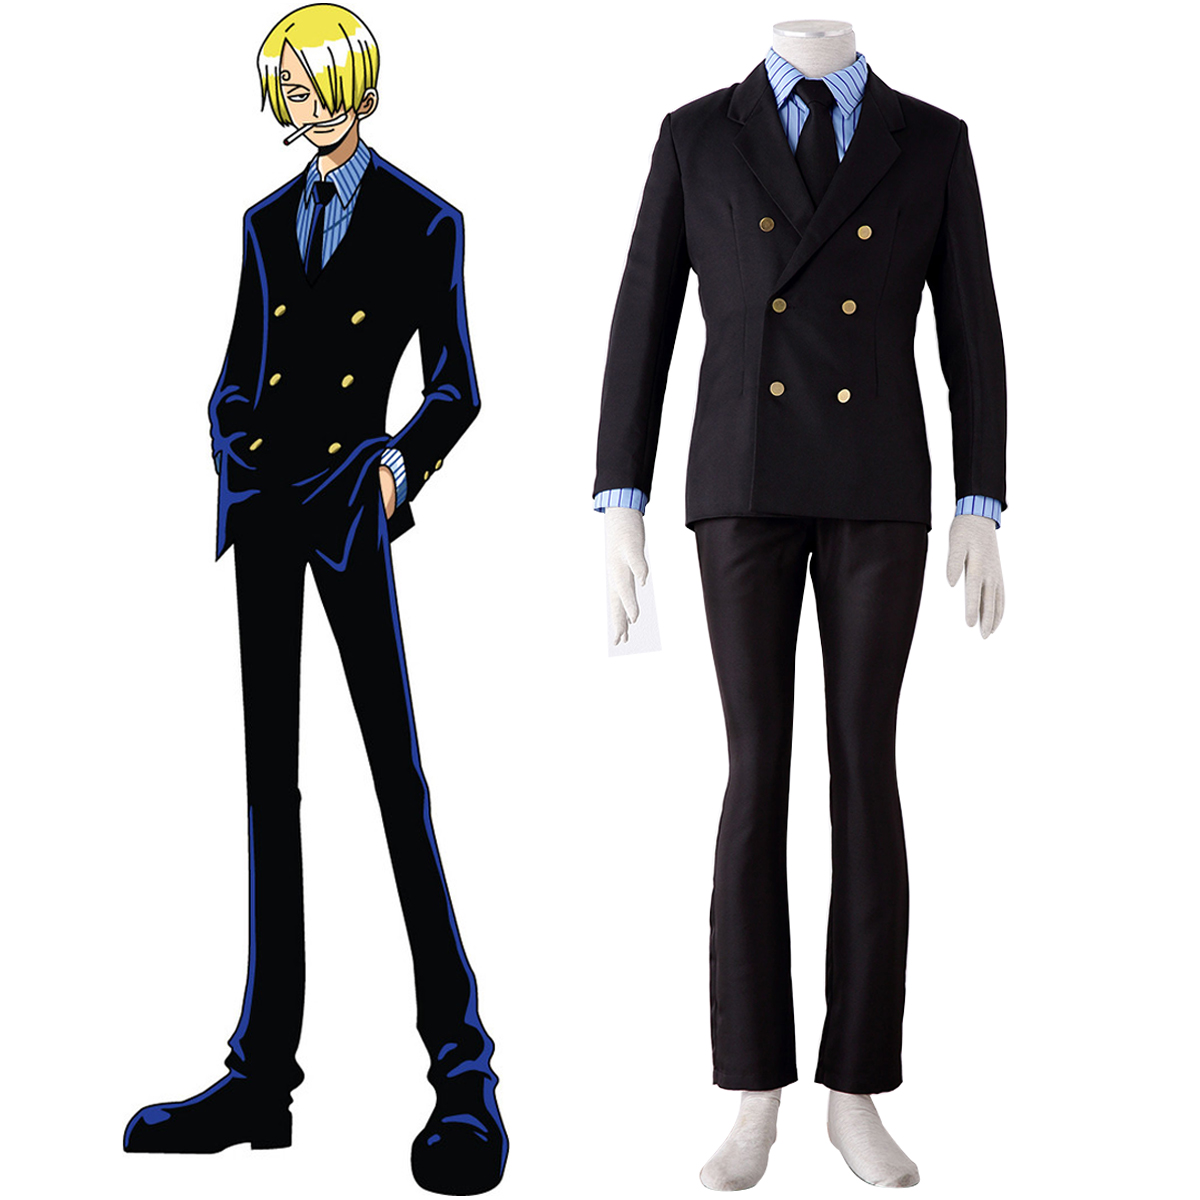 One Piece Sanji 1 Anime Cosplay Costumes Outfit